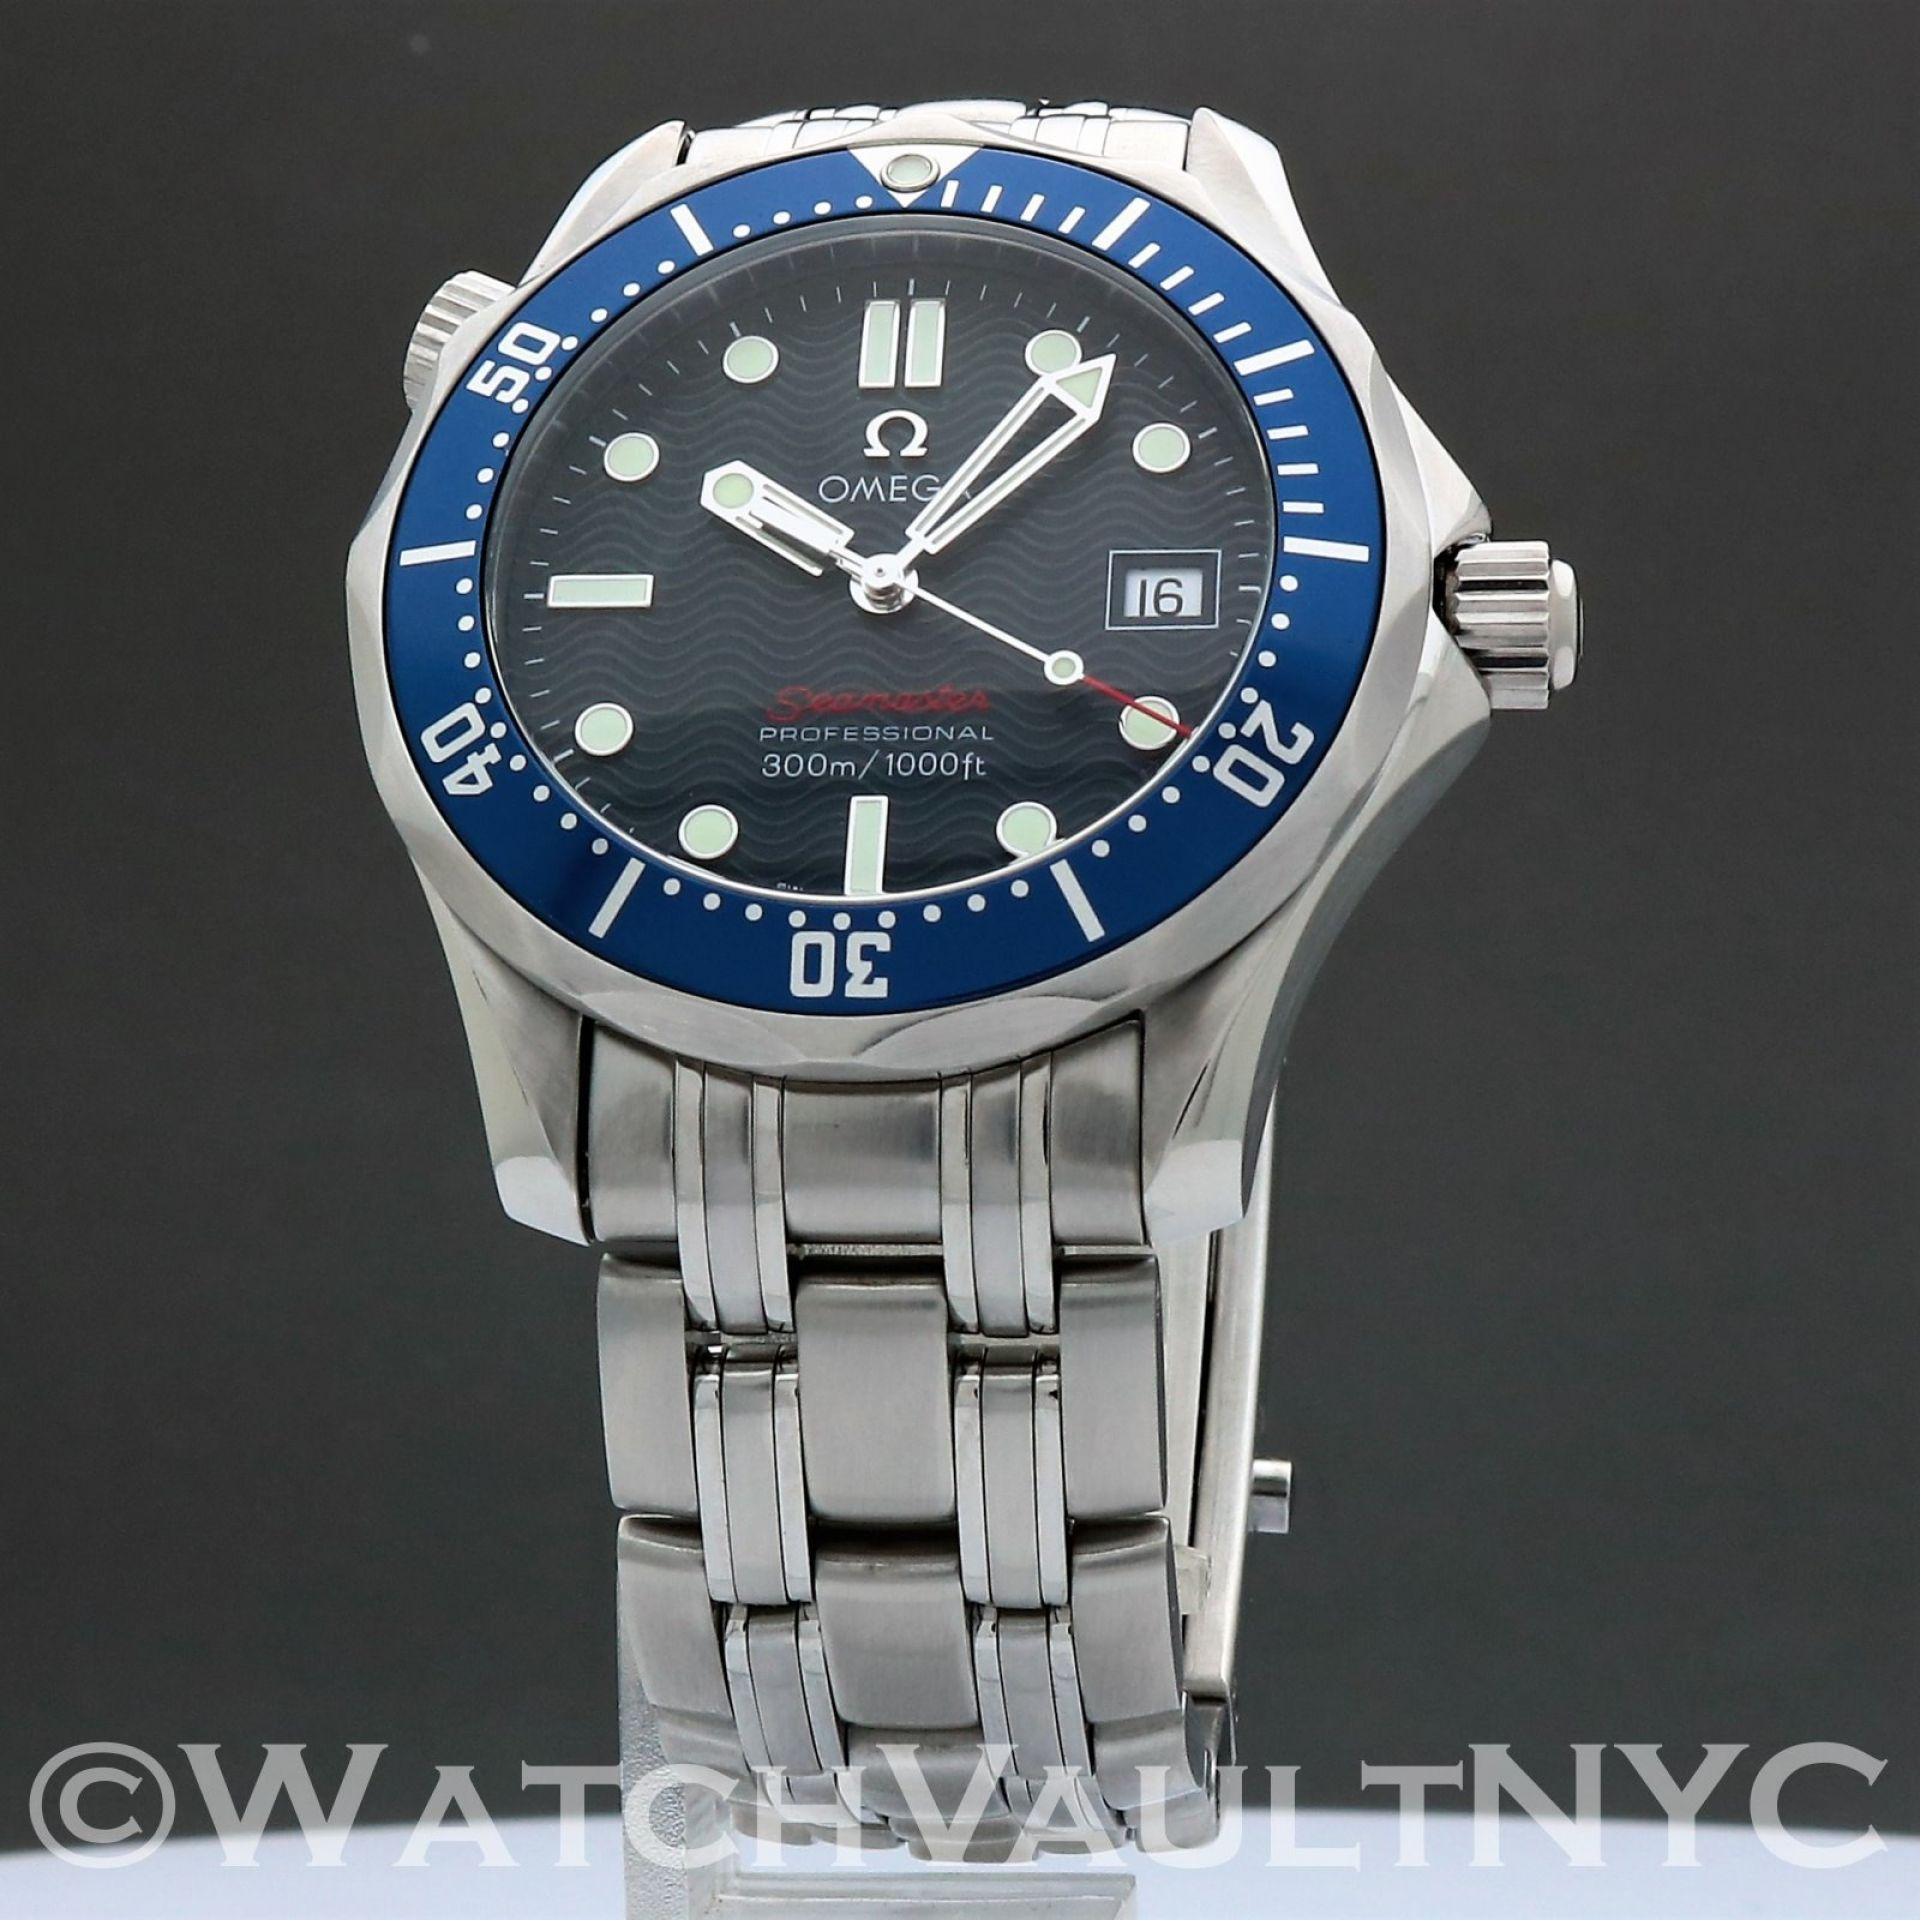 Omega Seamaster Professional 300M 2223.80 James Bond 36mm Quartz RL502